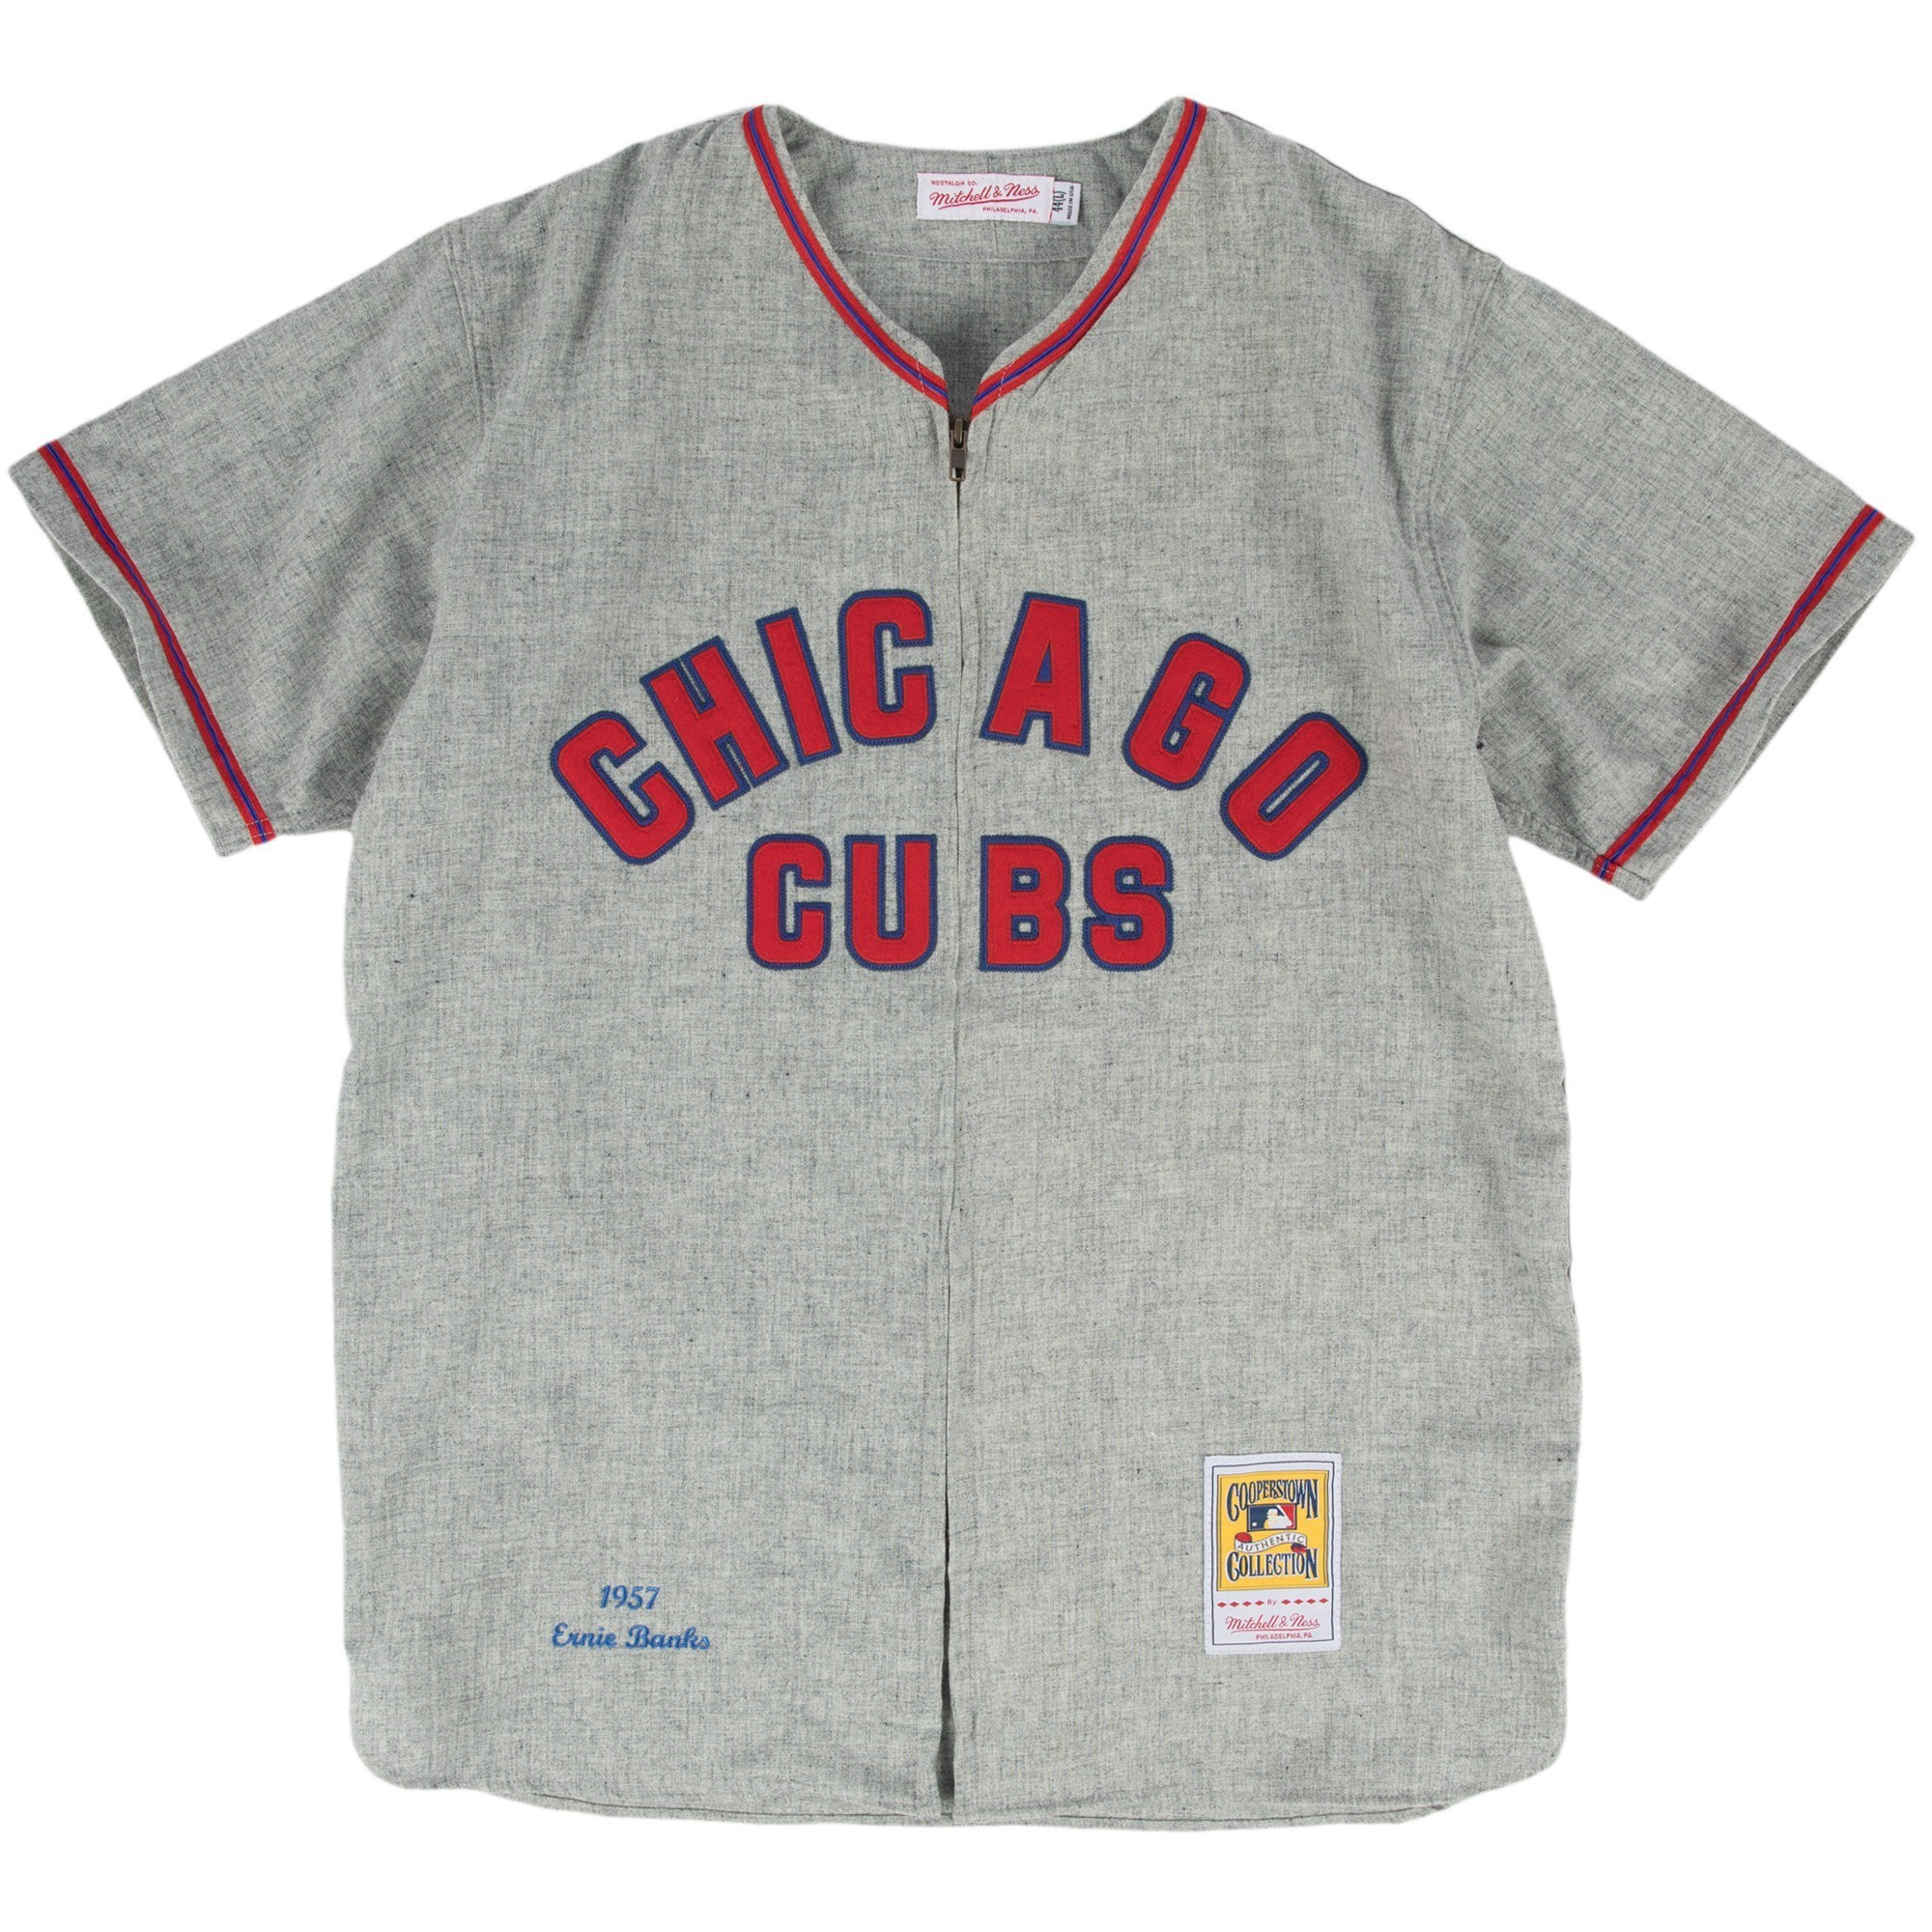 best loved 65223 8b5a7 Details about Ernie Banks Chicago Cubs Mitchell & Ness Authentic MLB 1957  Zip Front Jersey